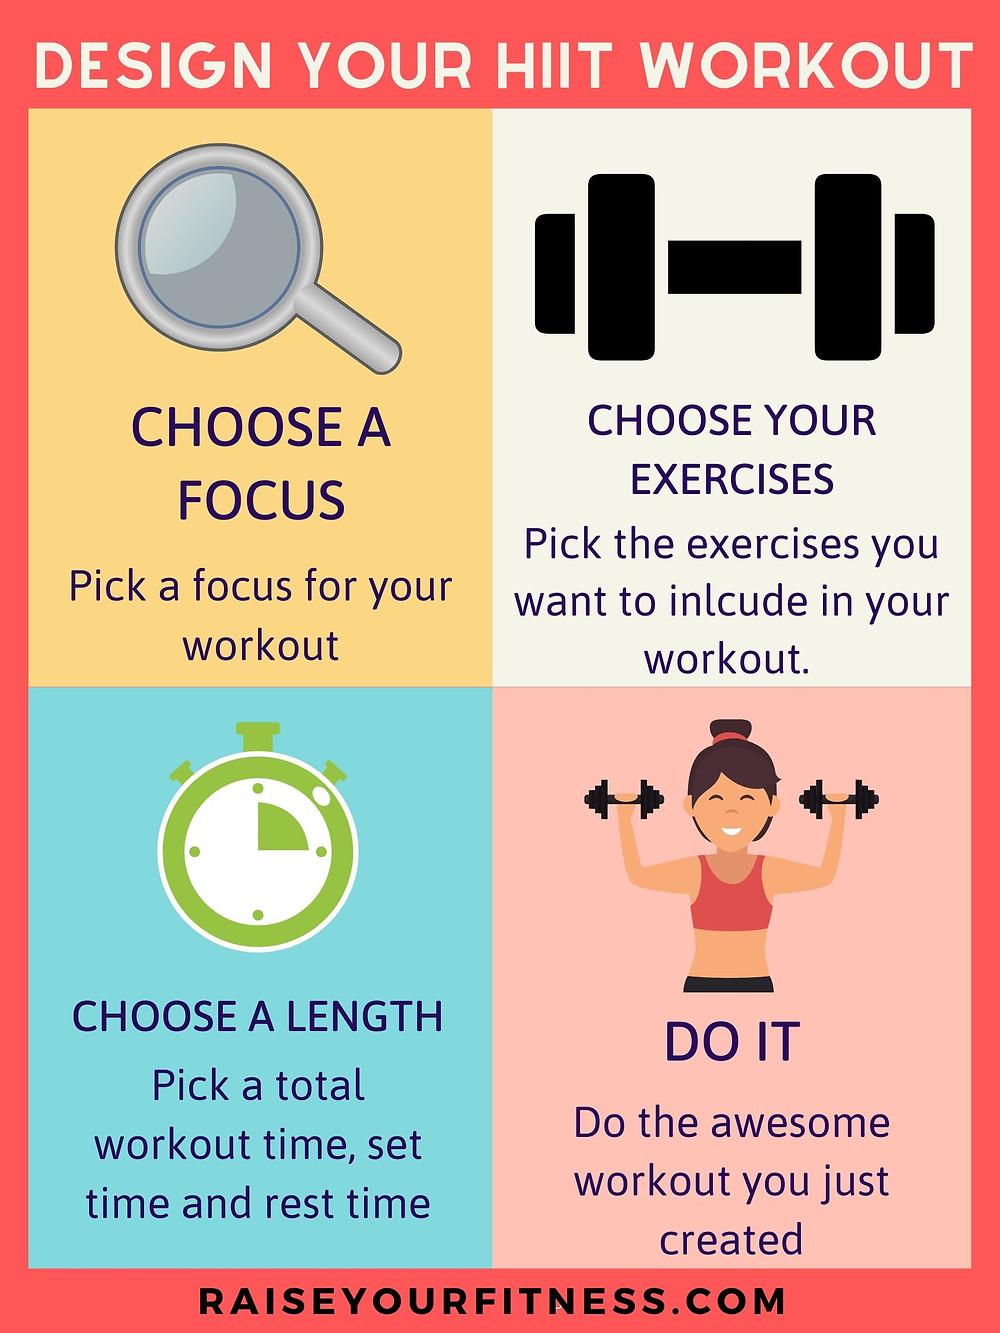 It is the steps to design your HIIT workout as we listed